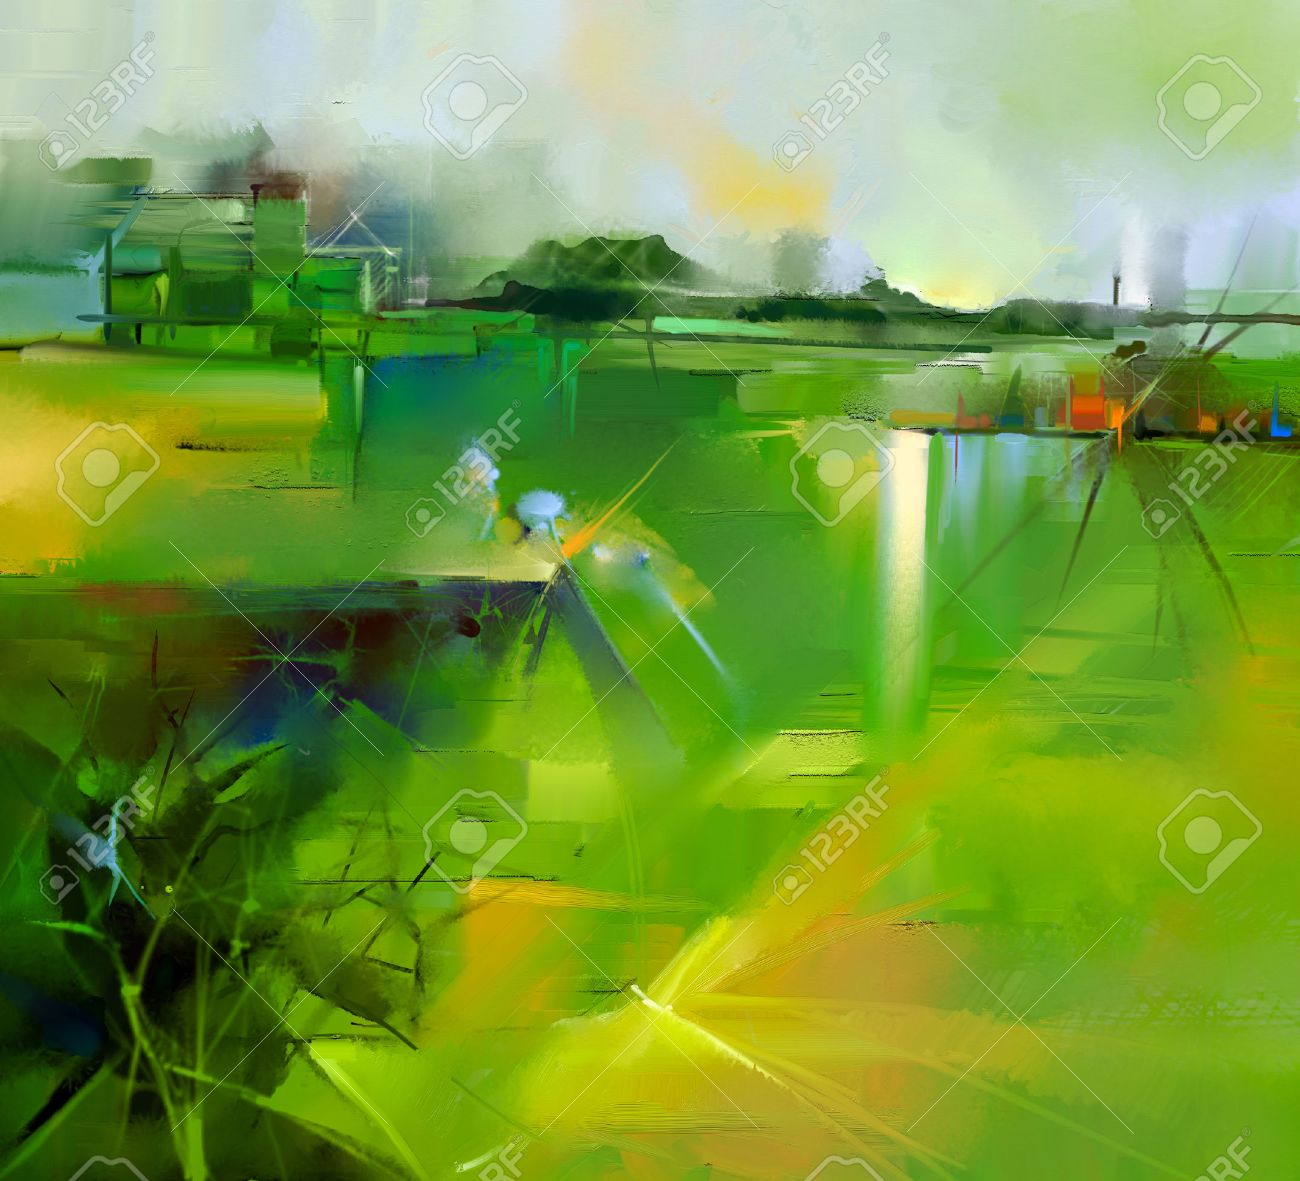 Abstract colorful yellow and green oil painting landscape on canvas. Semi- abstract image of tree, hill and flowers meadow (field) with gray sky. Spring,Summer season nature background - 52594900